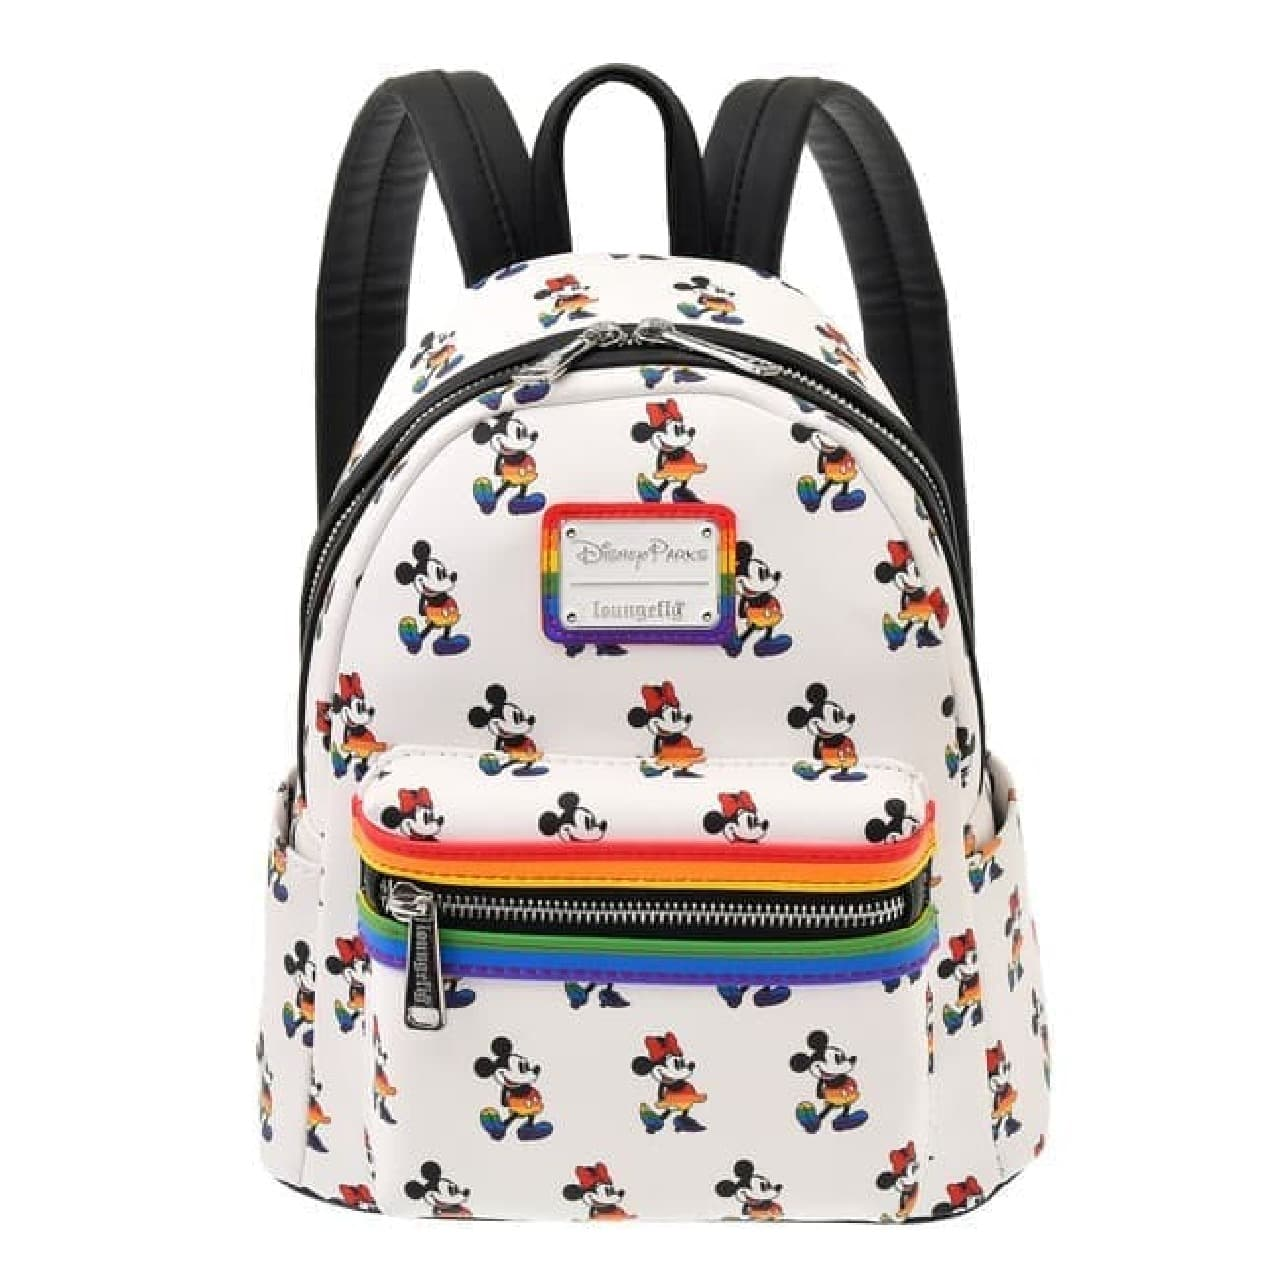 The Walt Disney Company's Pride Collection